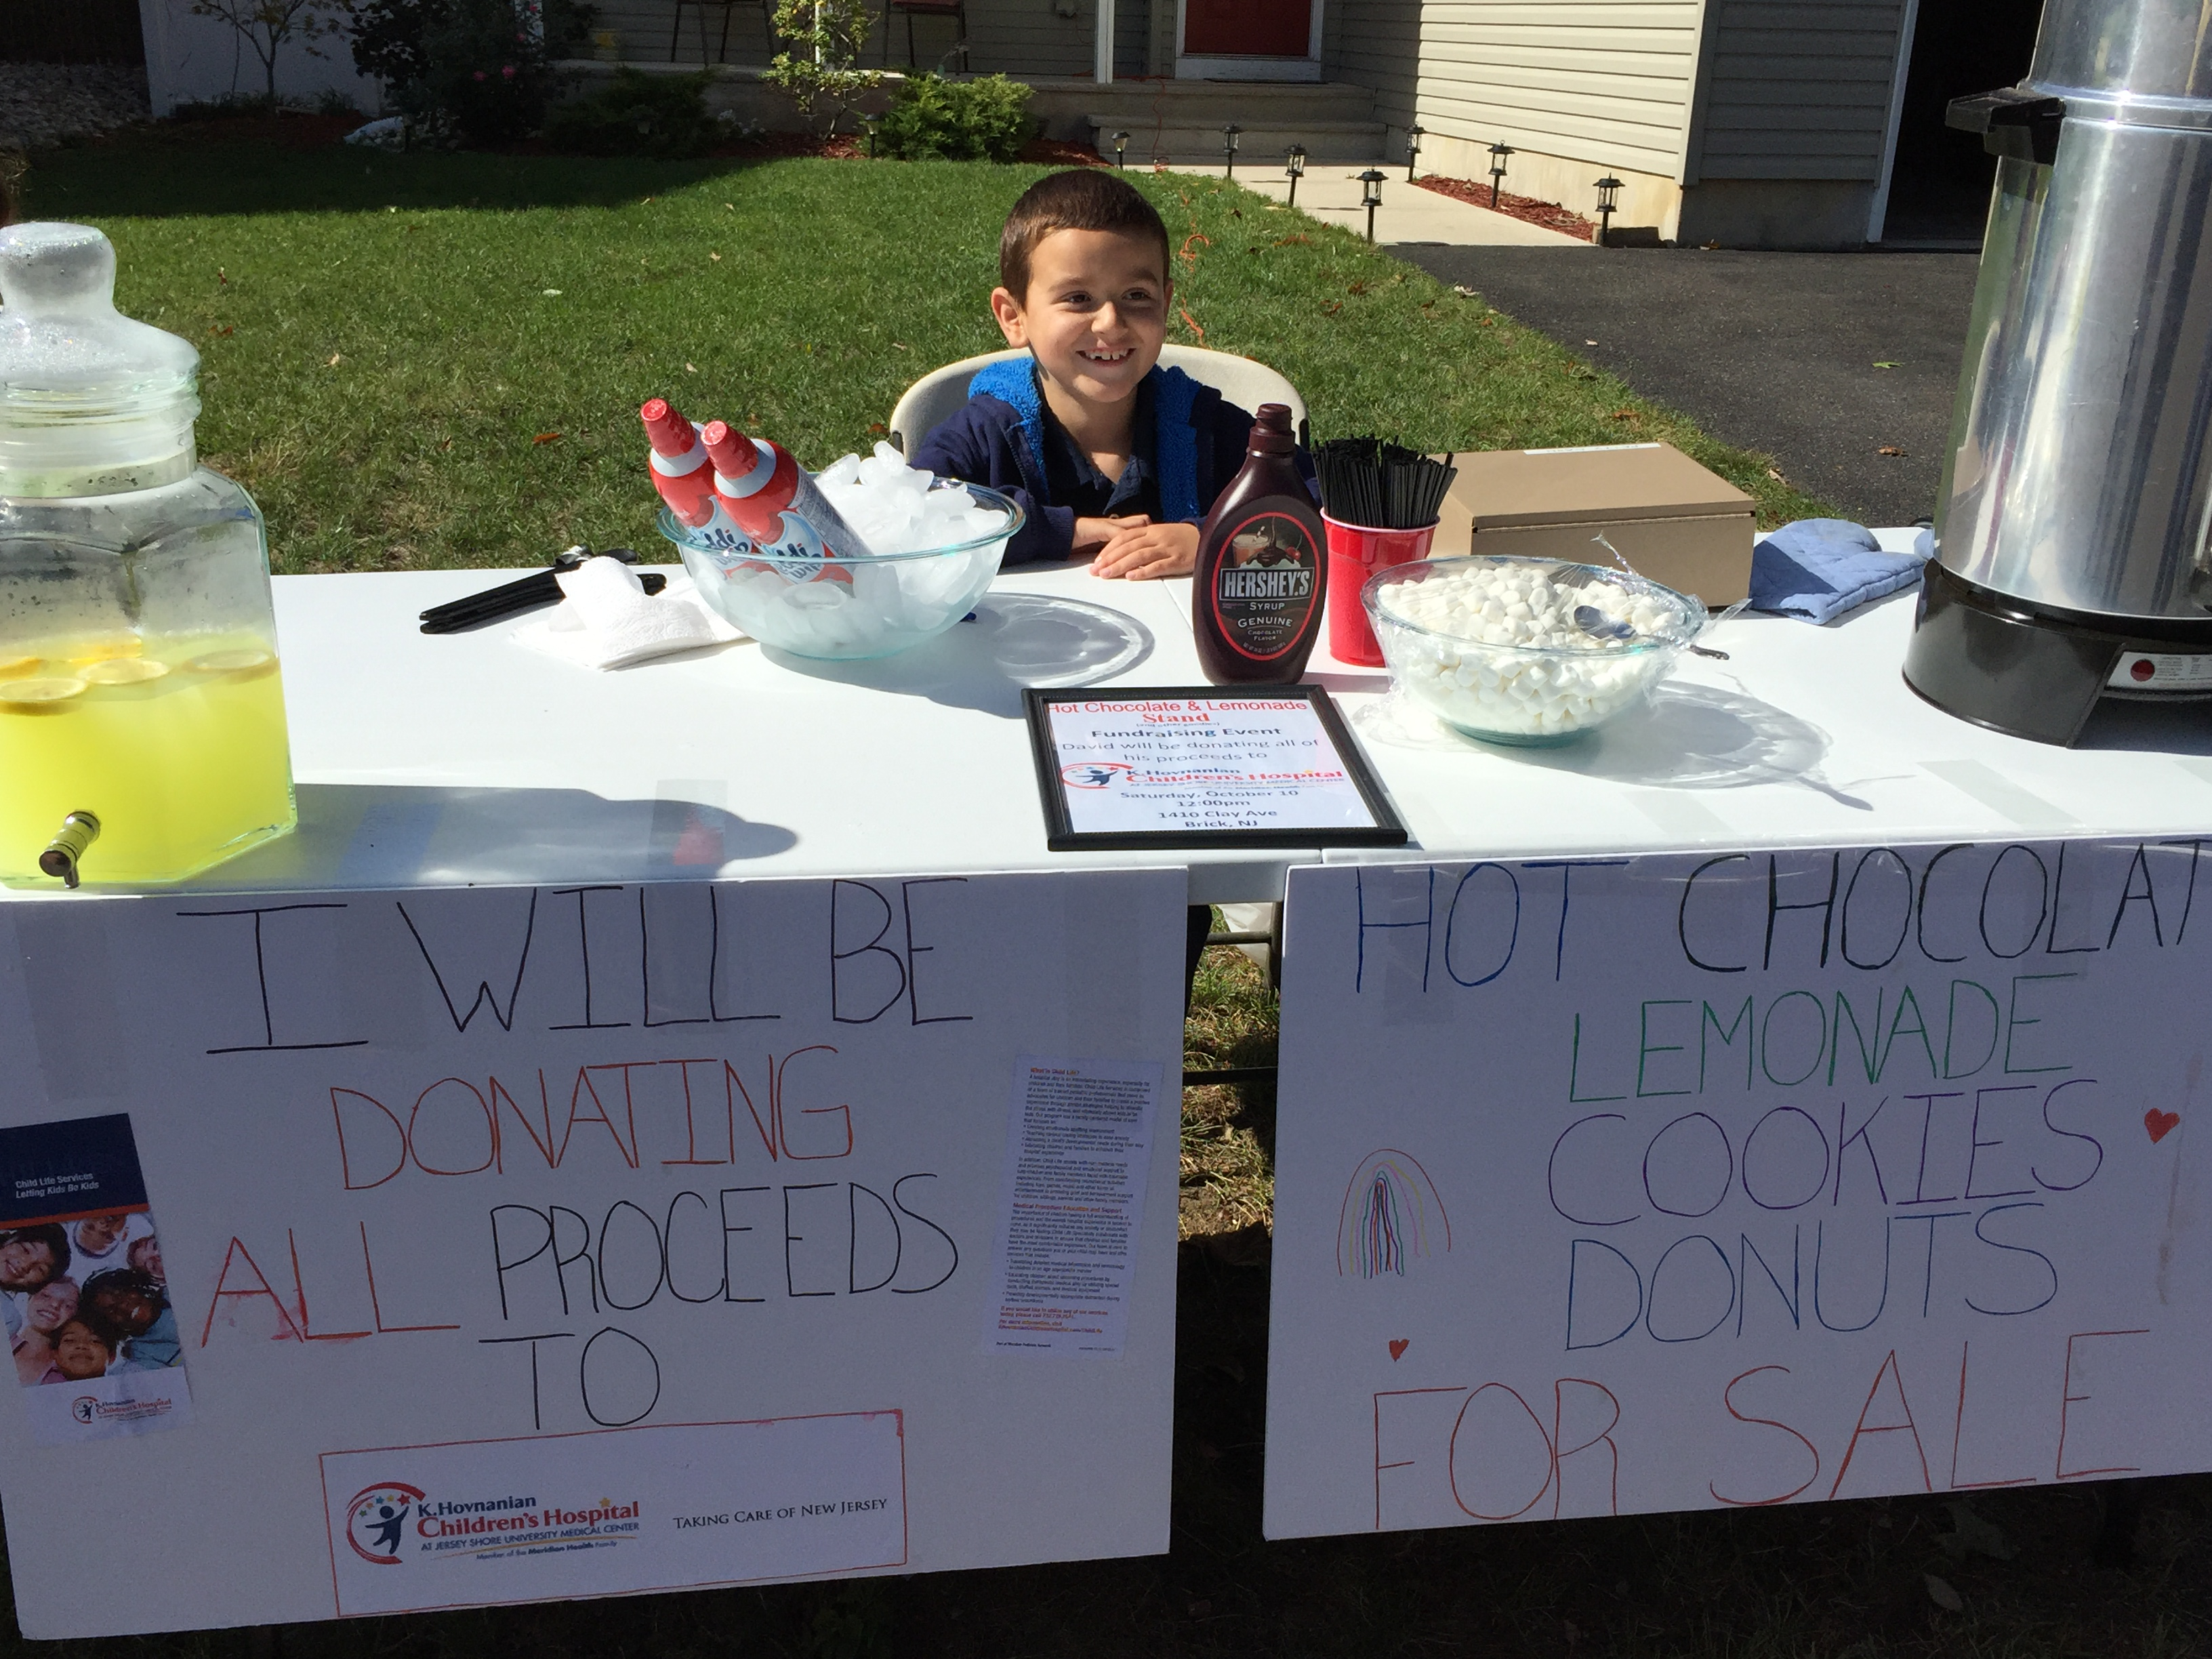 David Torres, 7, runs a charity lemonade stand in front of his house. (Photo: Kristina Torres)